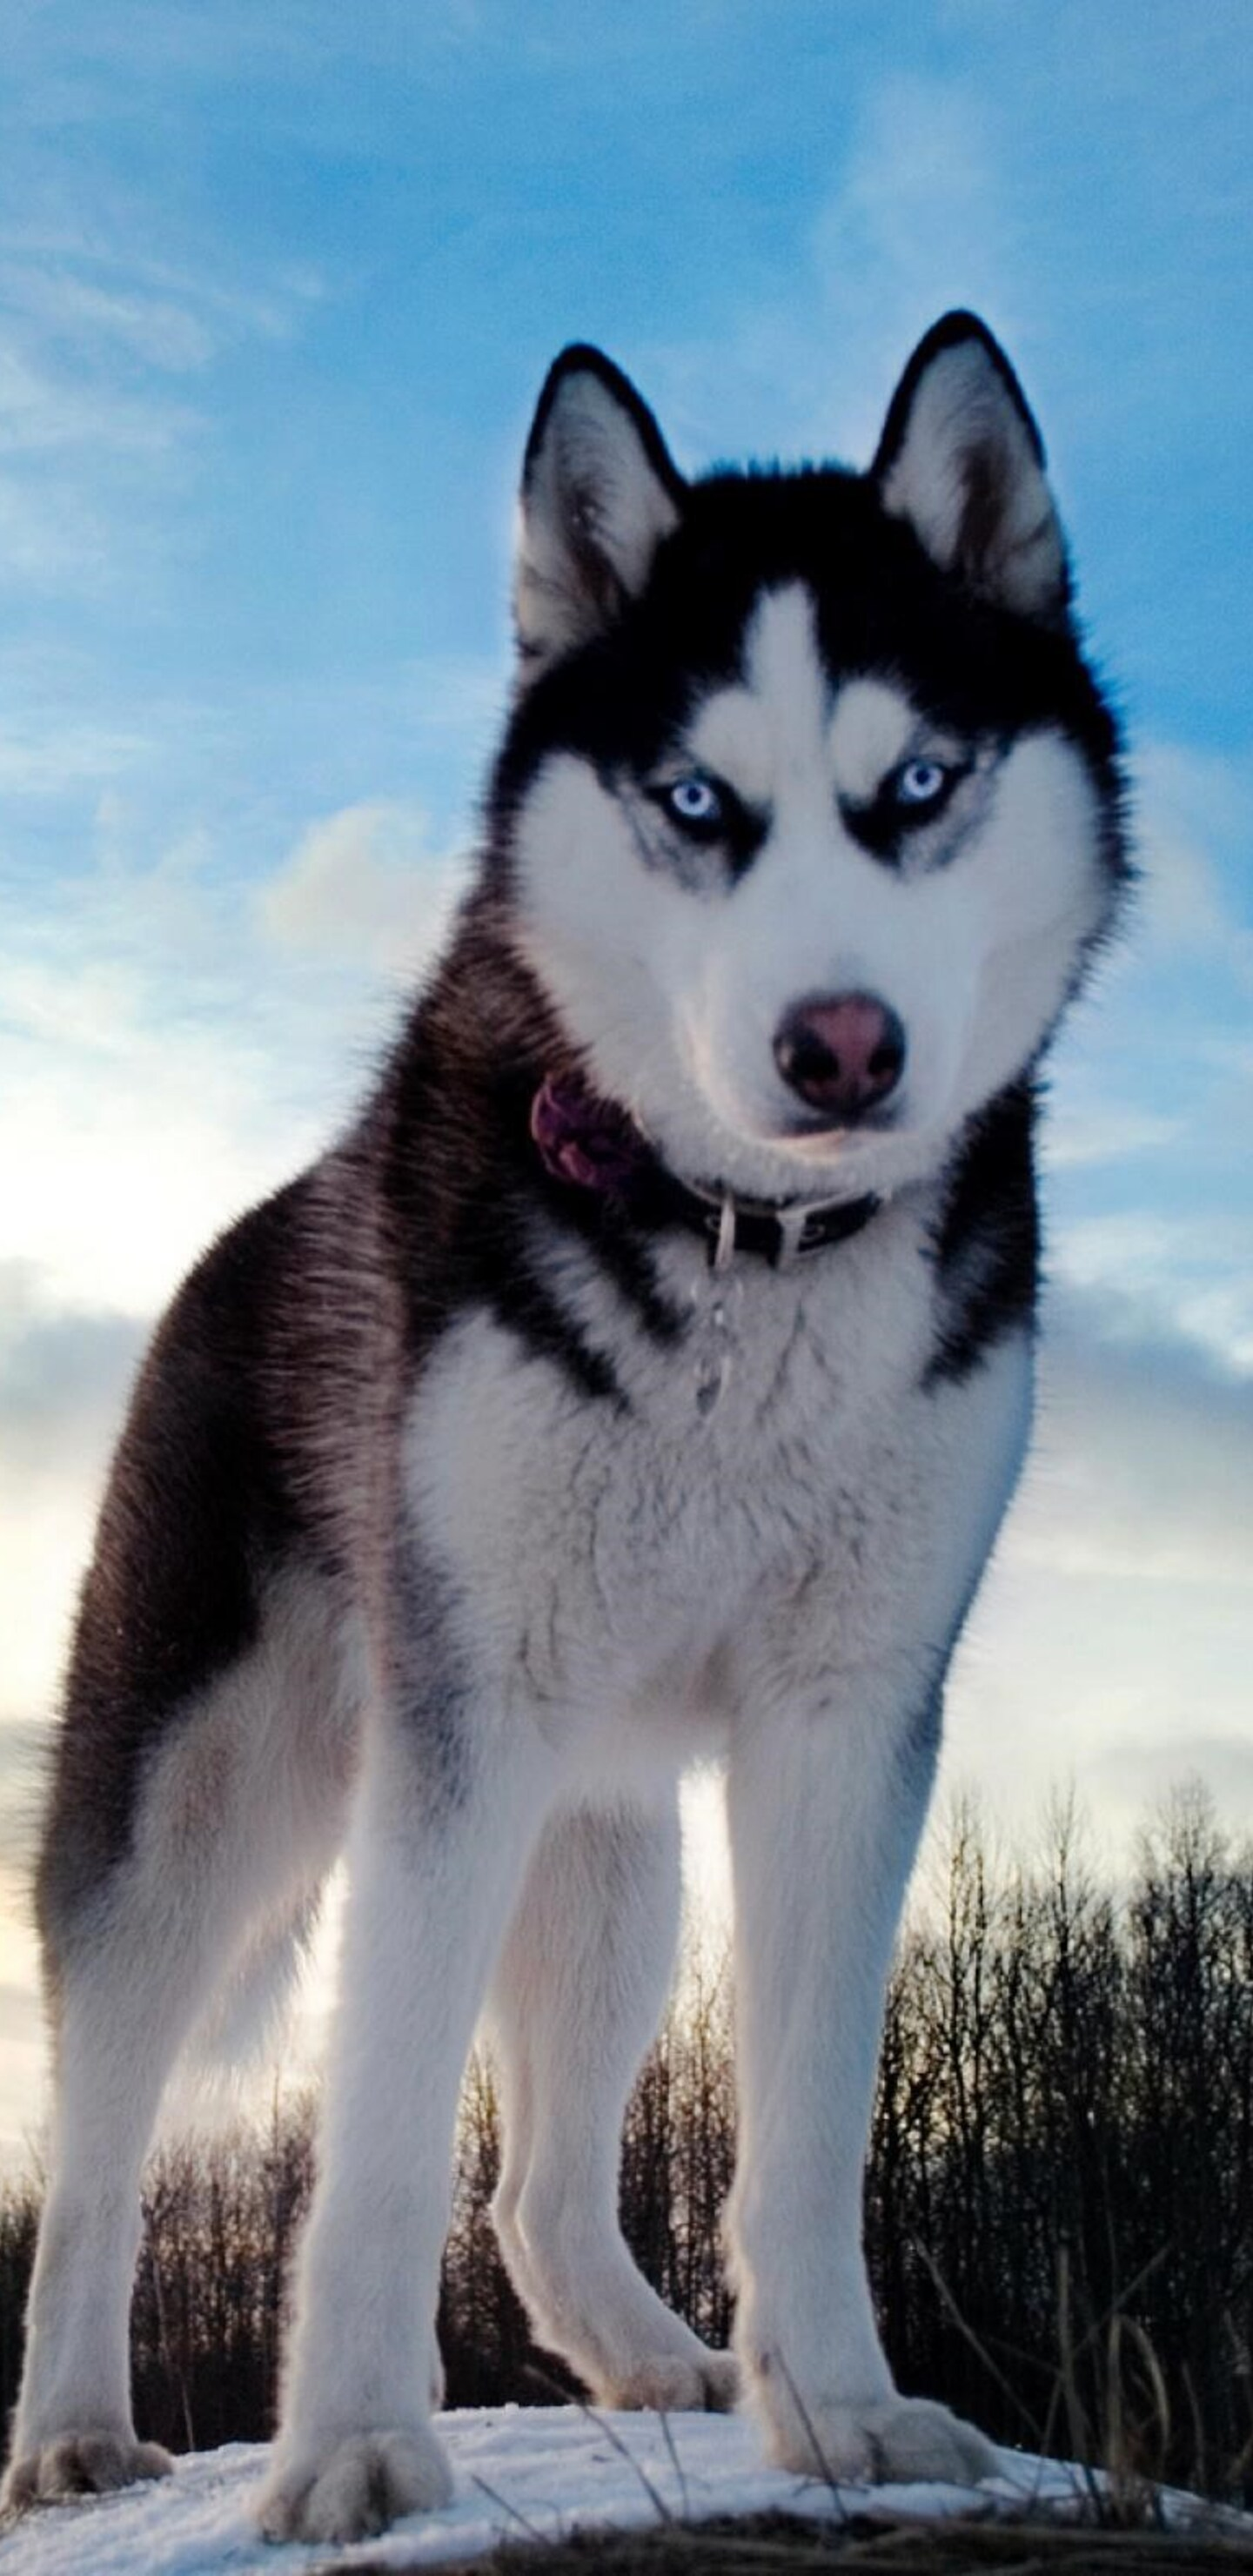 Samsung Galaxy S8 Wallpaper Hd 1440x2960 Siberan Husky 4 Samsung Galaxy Note 9 8 S9 S8